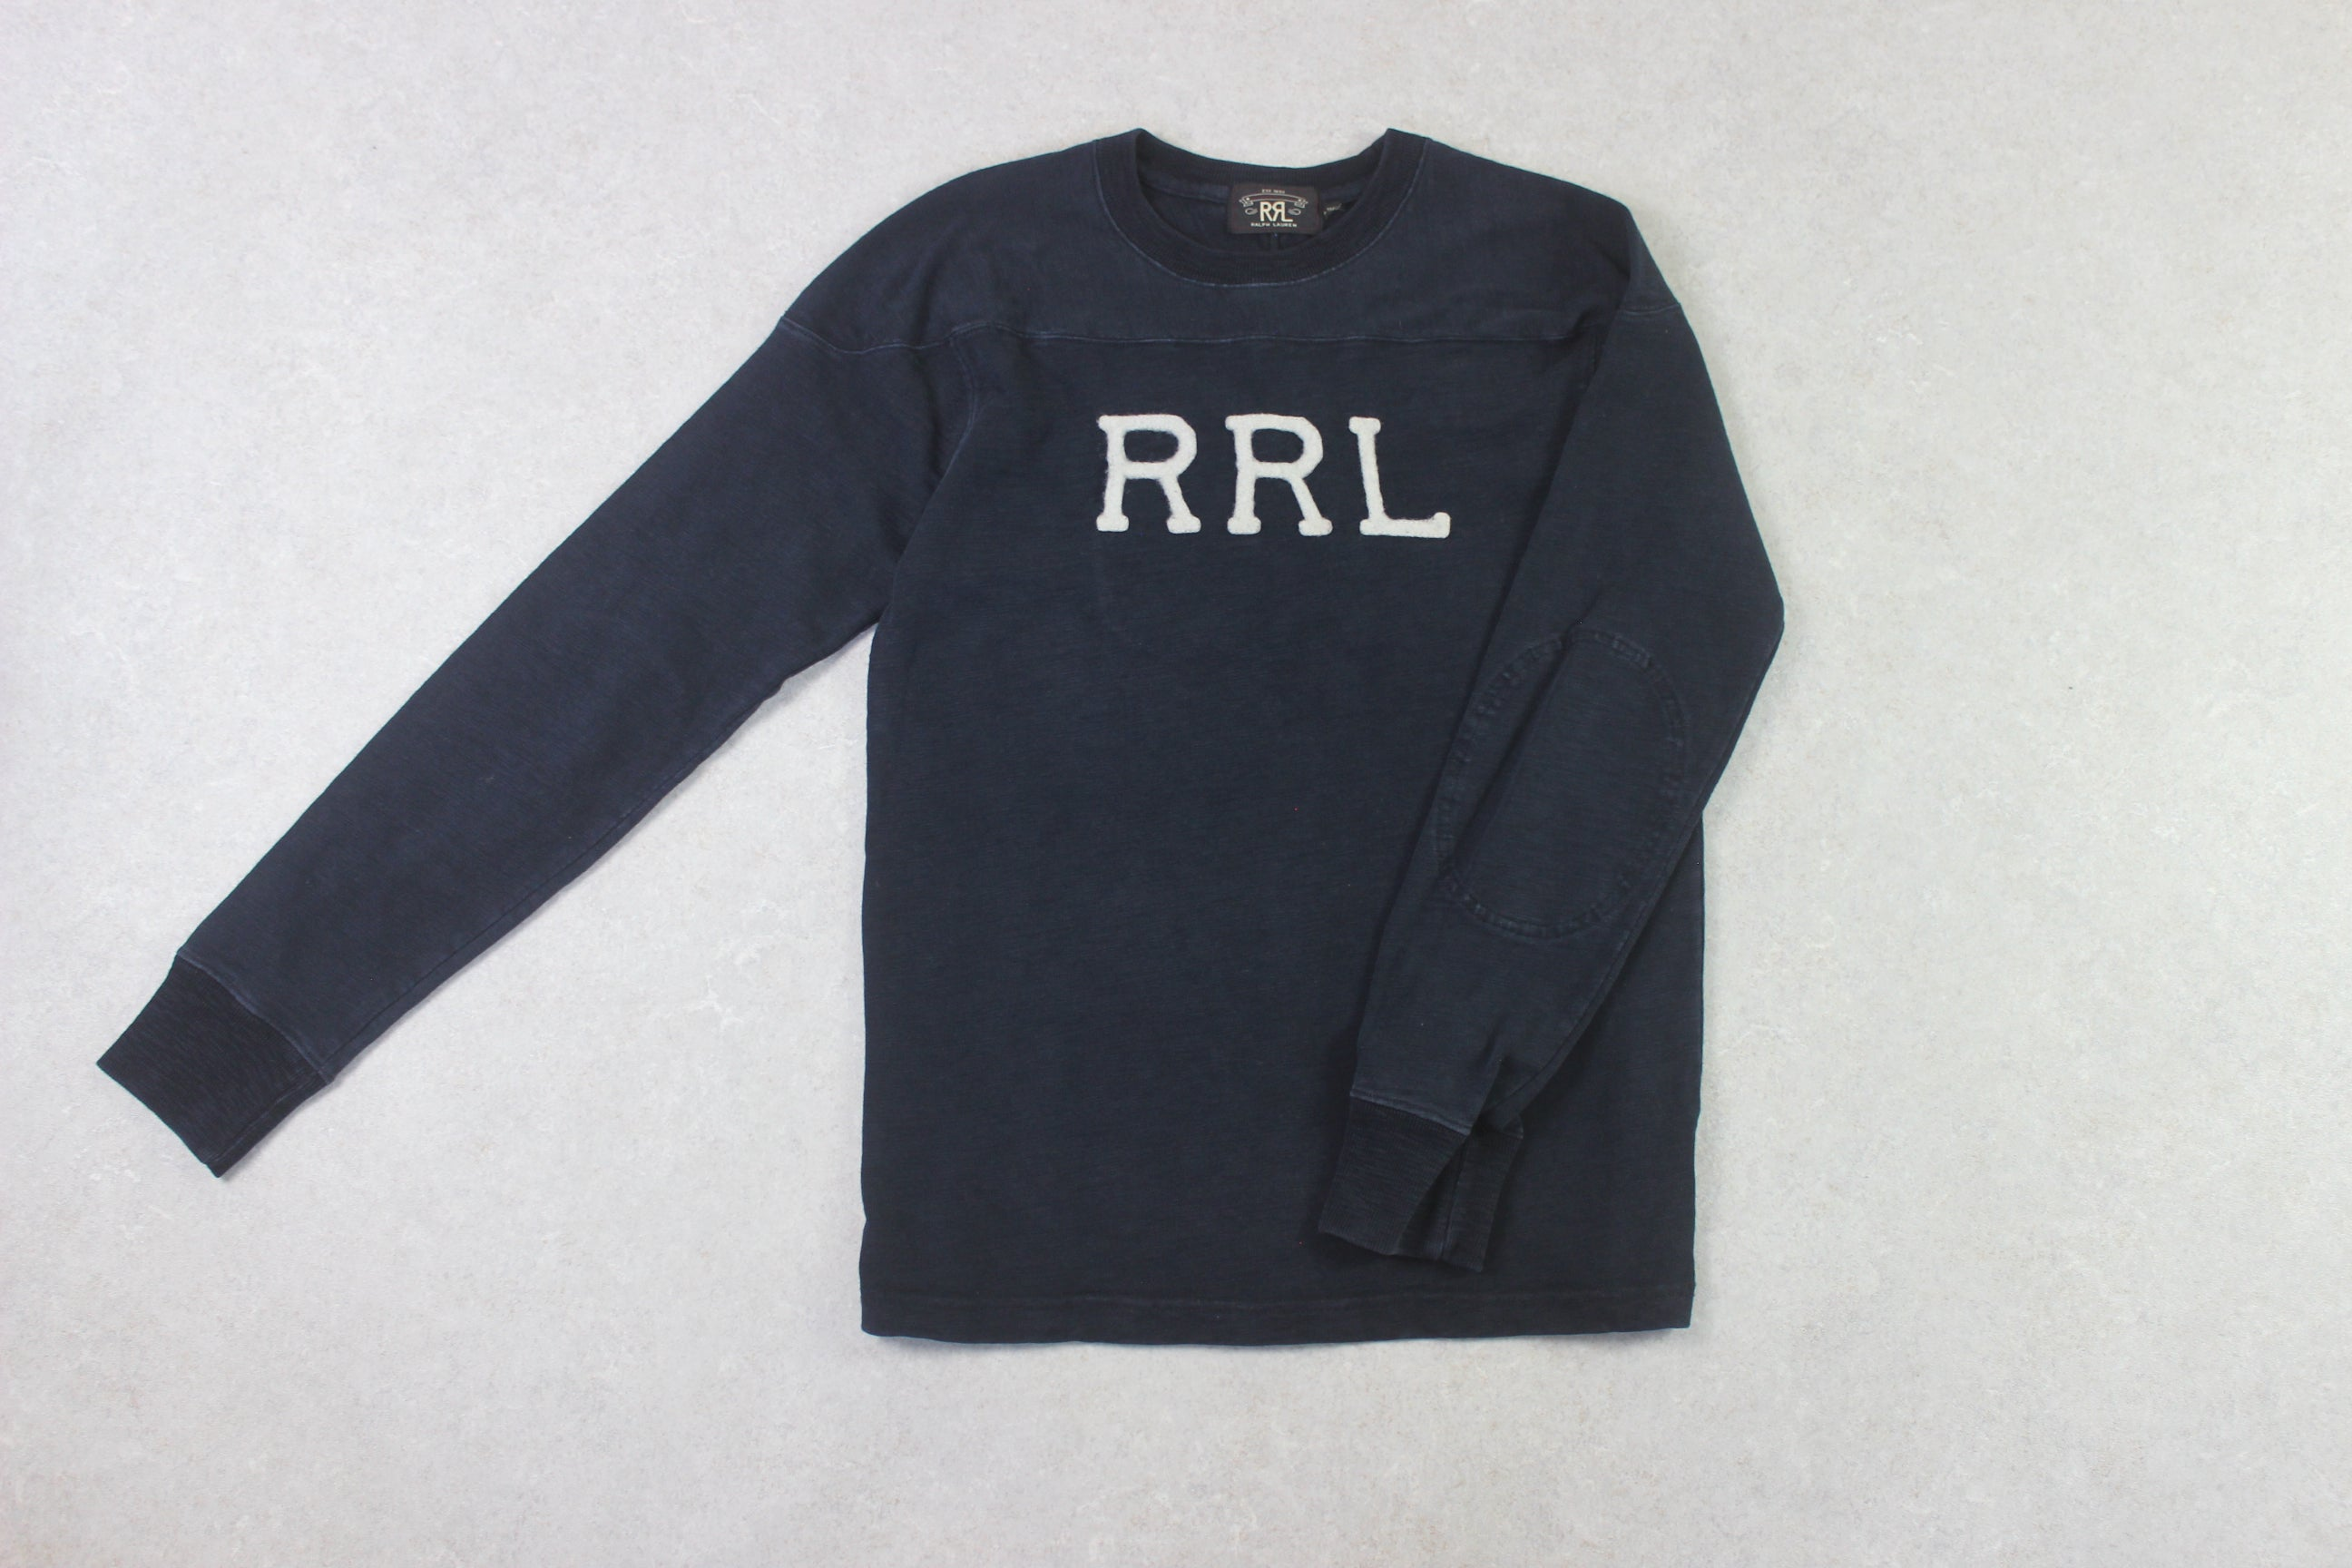 RRL Ralph Lauren - Sweatshirt Jumper - Navy Blue - Small